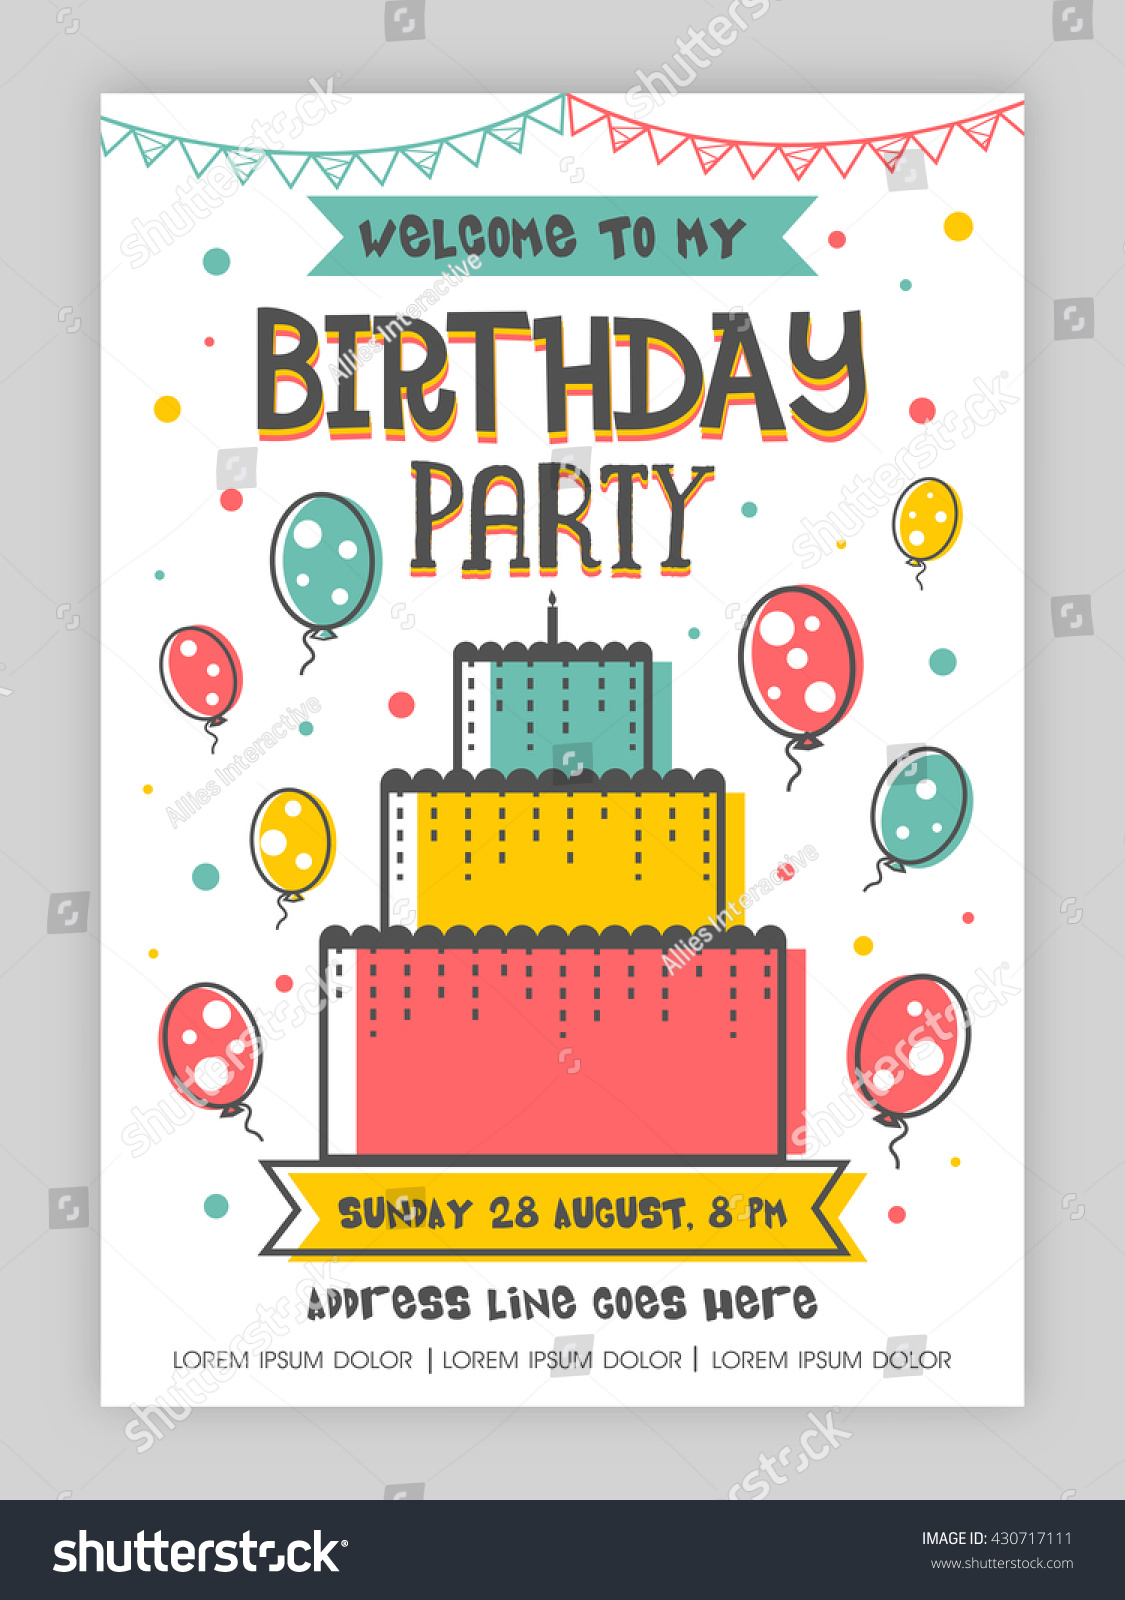 Birthday Party Invitation Card Welcome Card Stock Vector (Royalty Free)  430717111